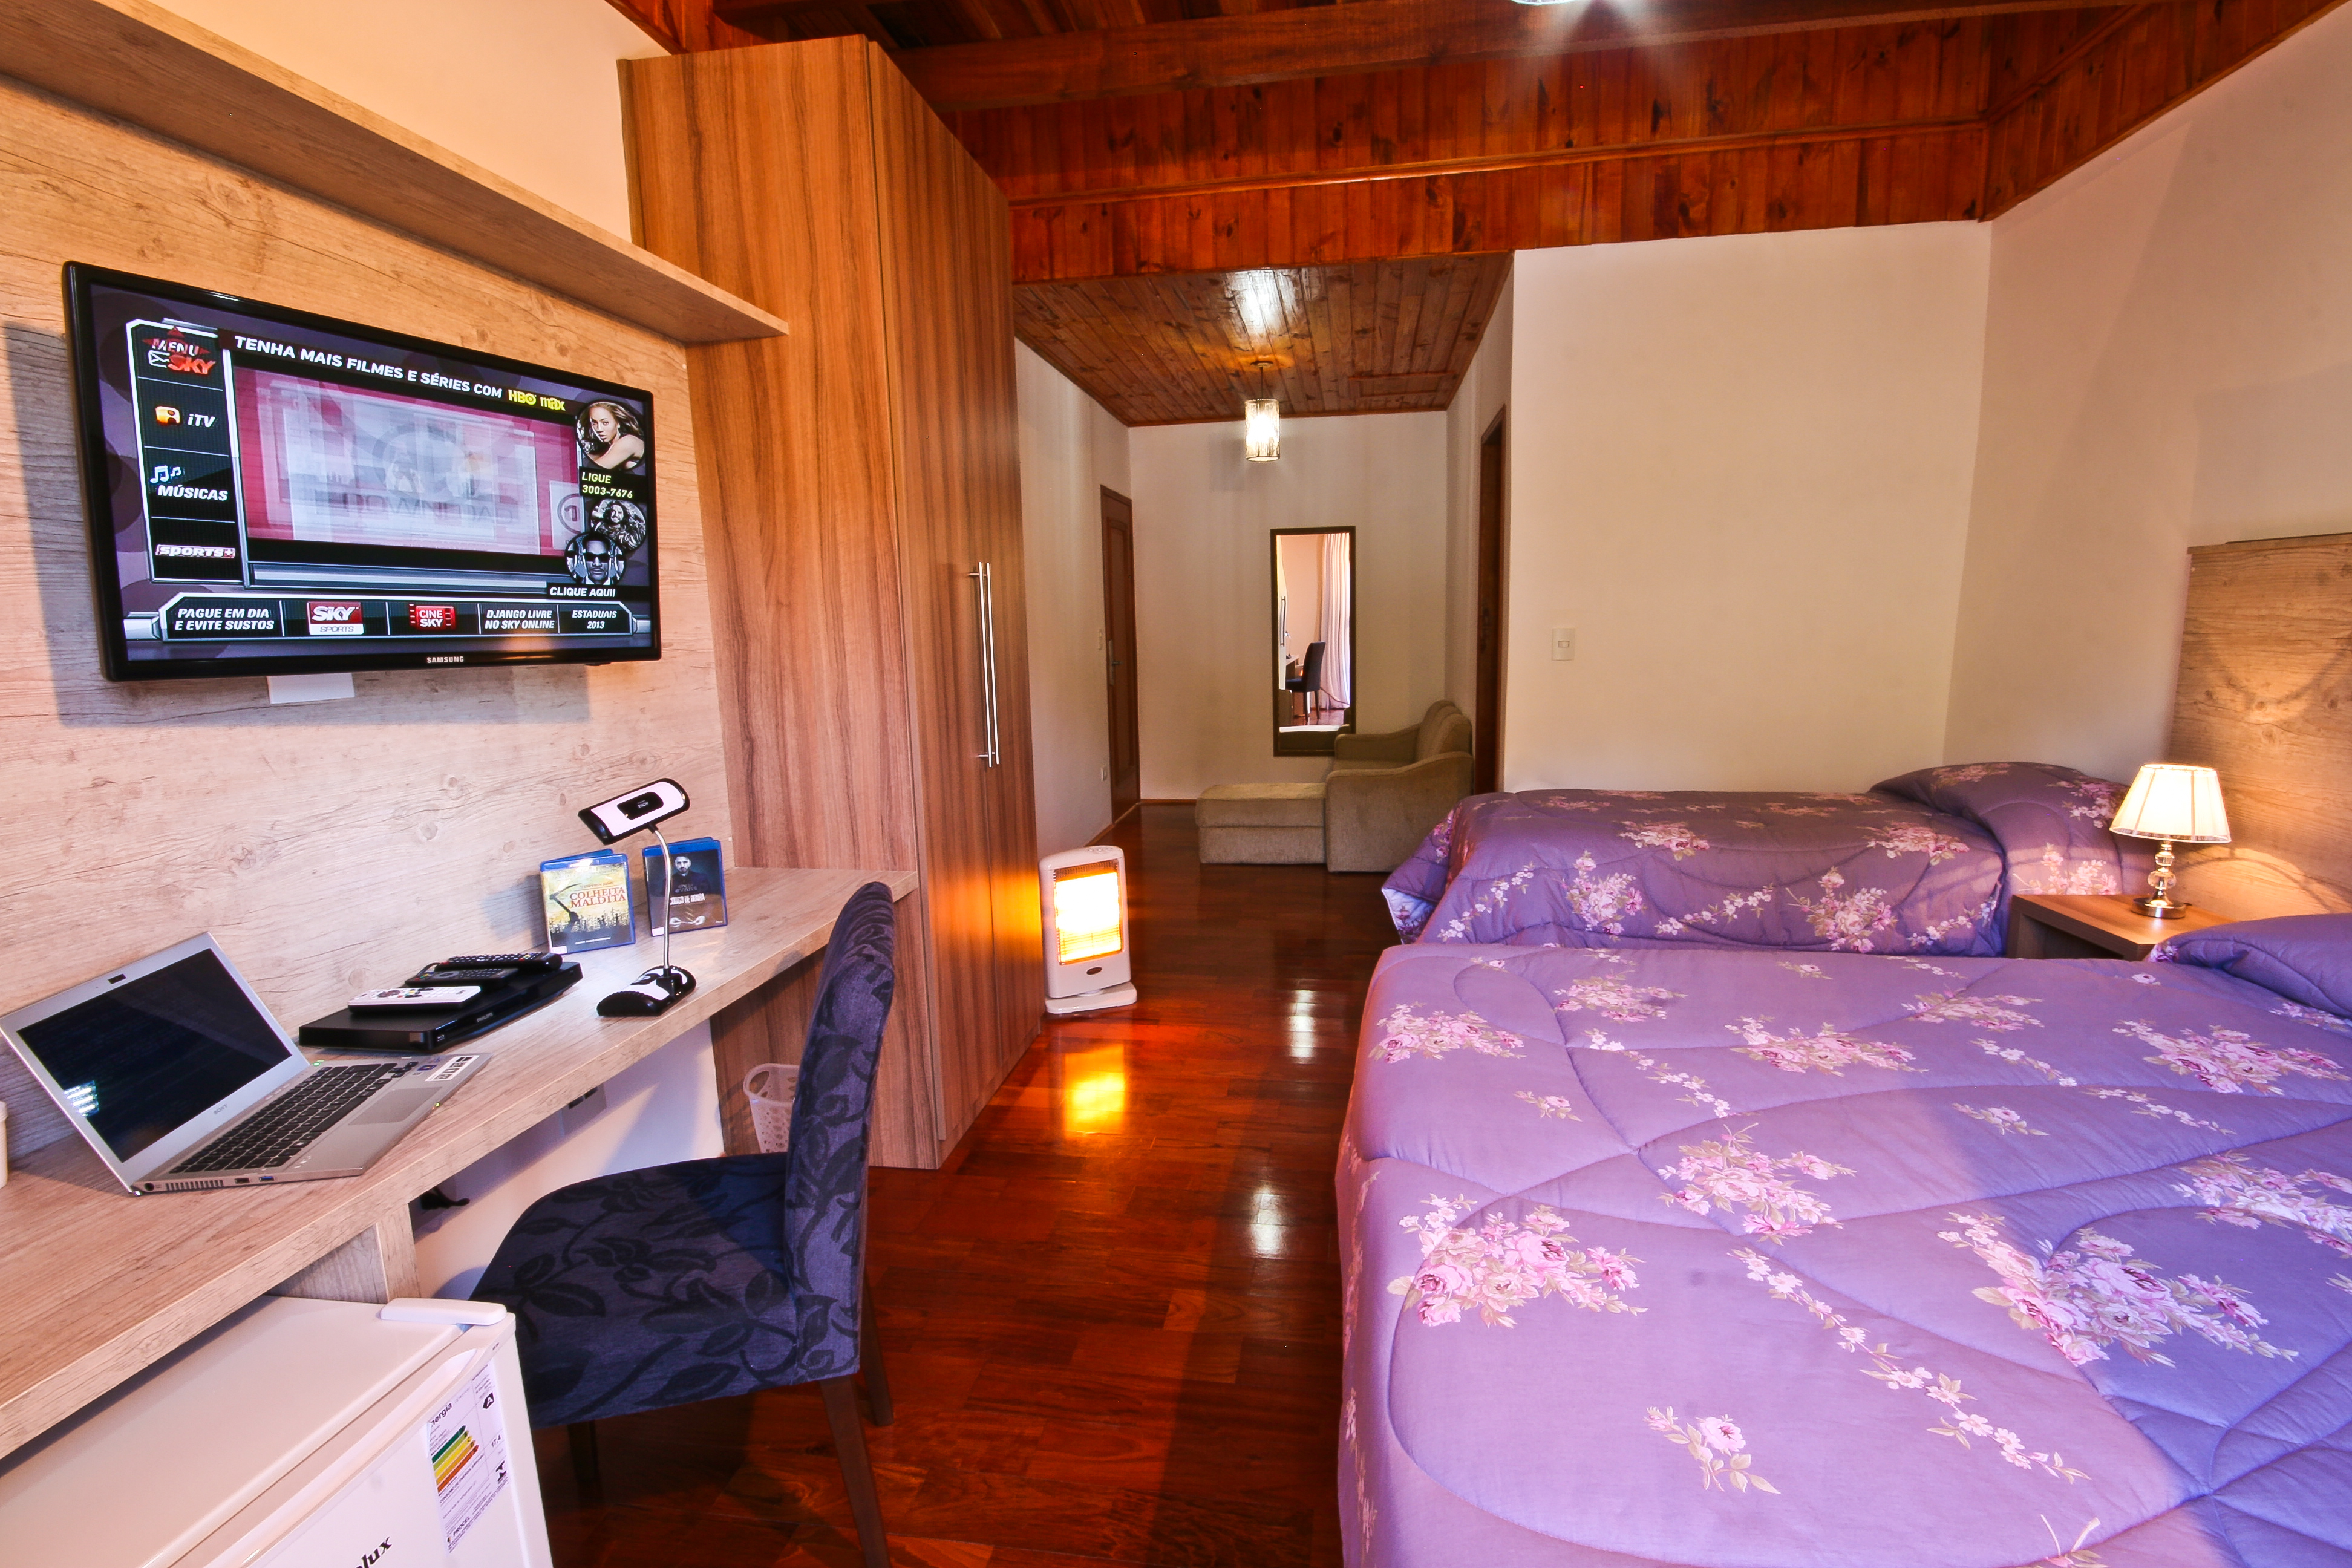 apartamento-golde-forest-campos-do-jordao-05